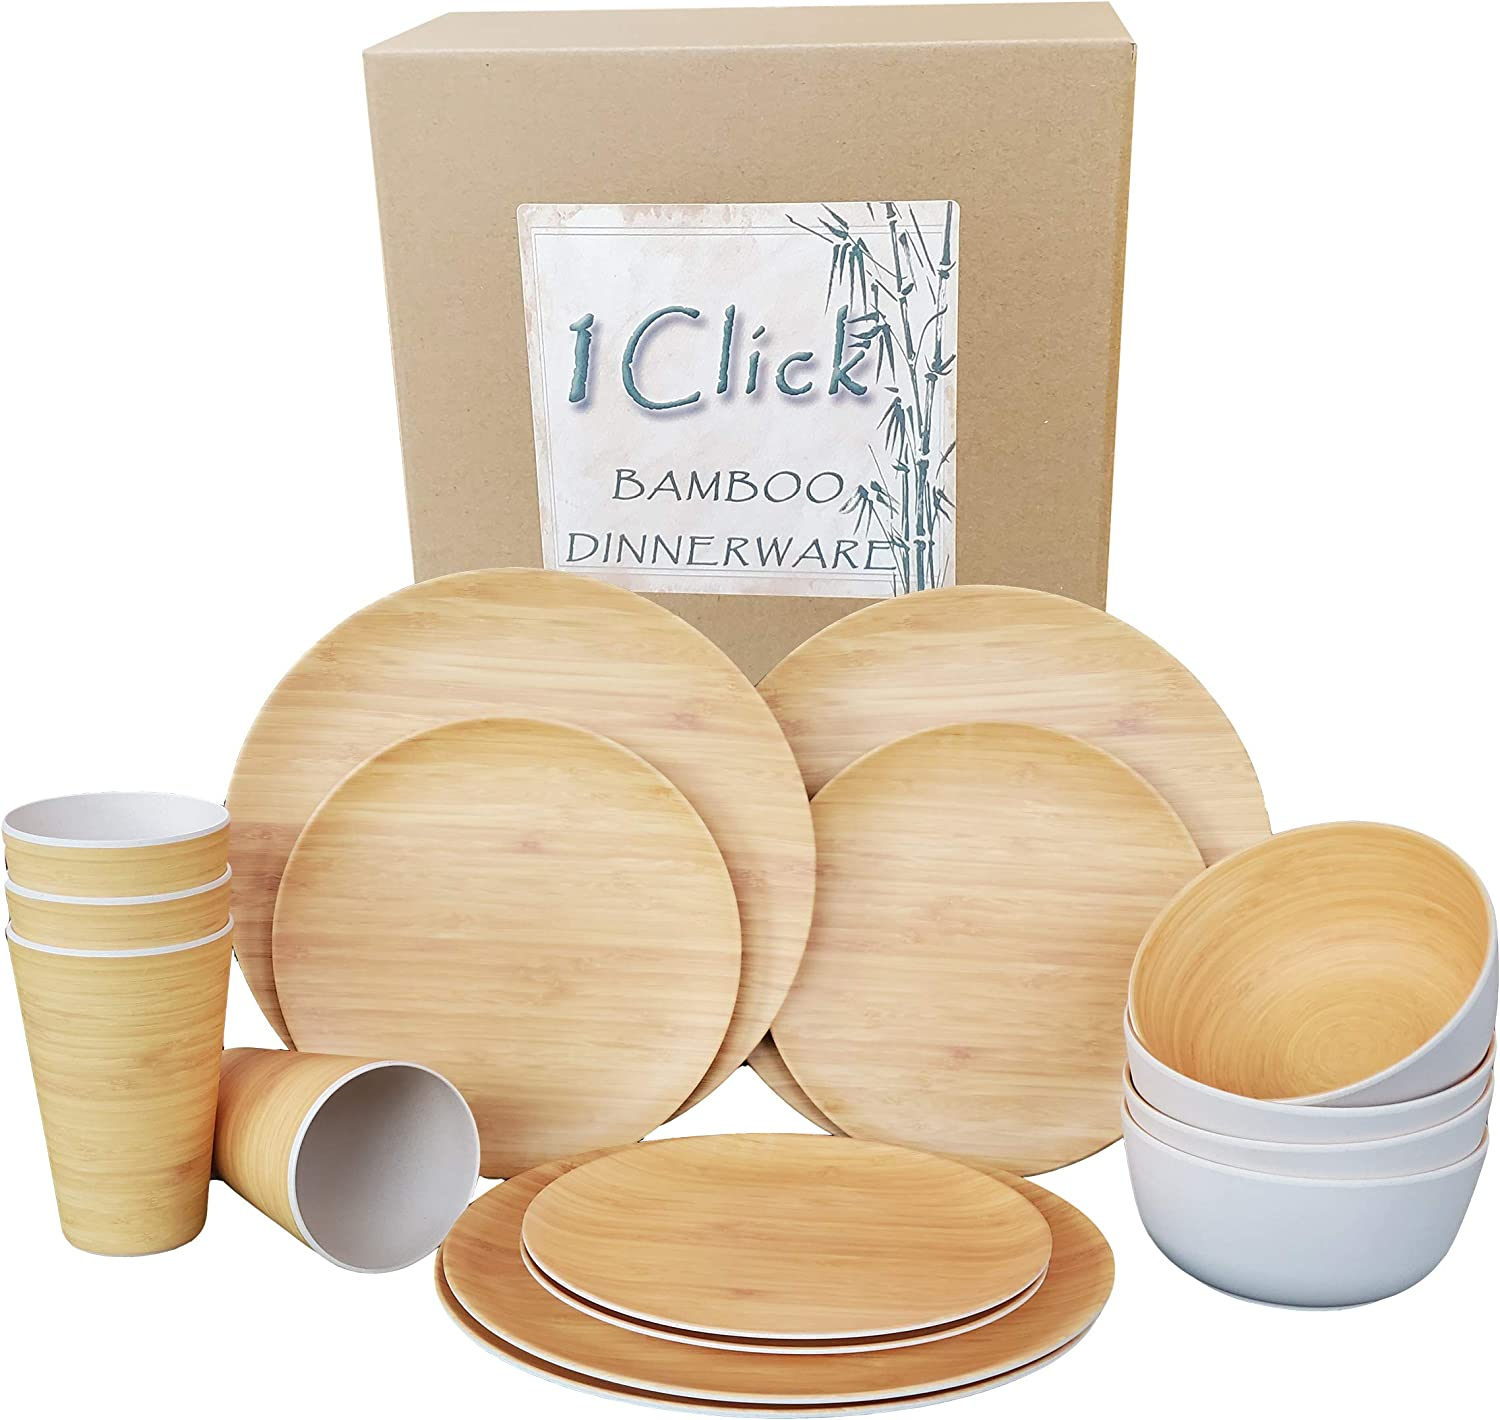 1 Click Bamboo Fiber Reusable Dinnerware Set, 16 Pieces for 4 guests, Reusable, Dishwasher Safe, For Events, Parties and Home Use